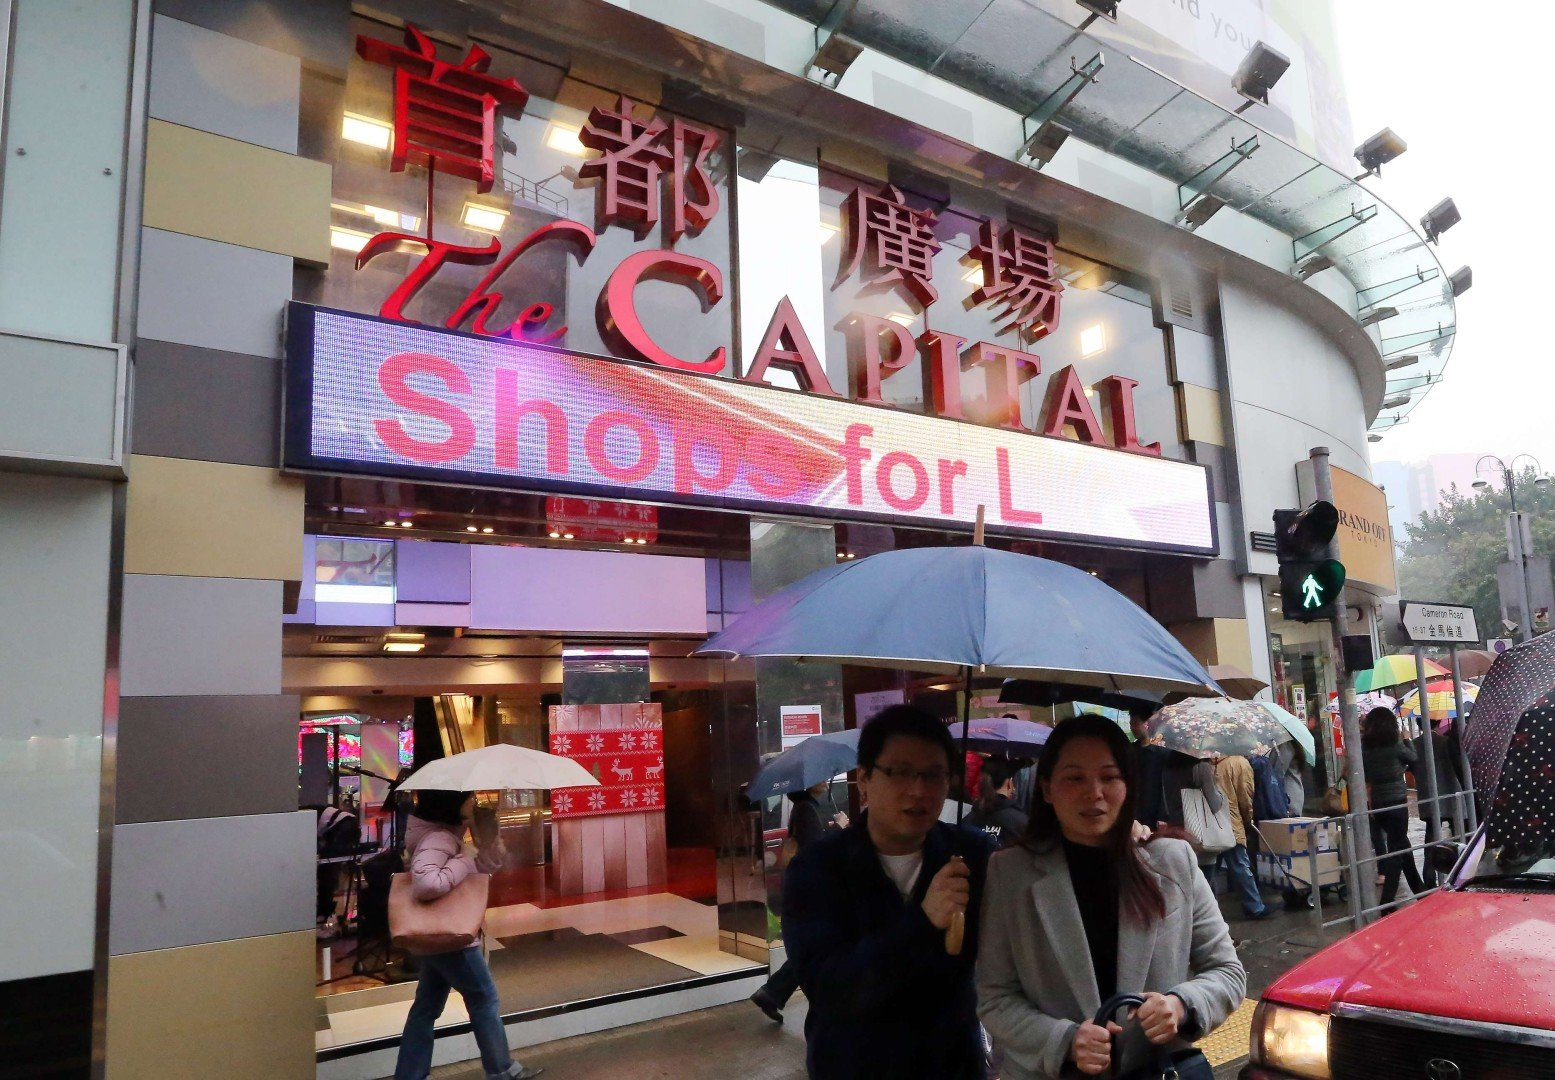 829a0099c Ghost malls  Hong Kong mini-shop owners and operators find the going tough amid  retail downturn